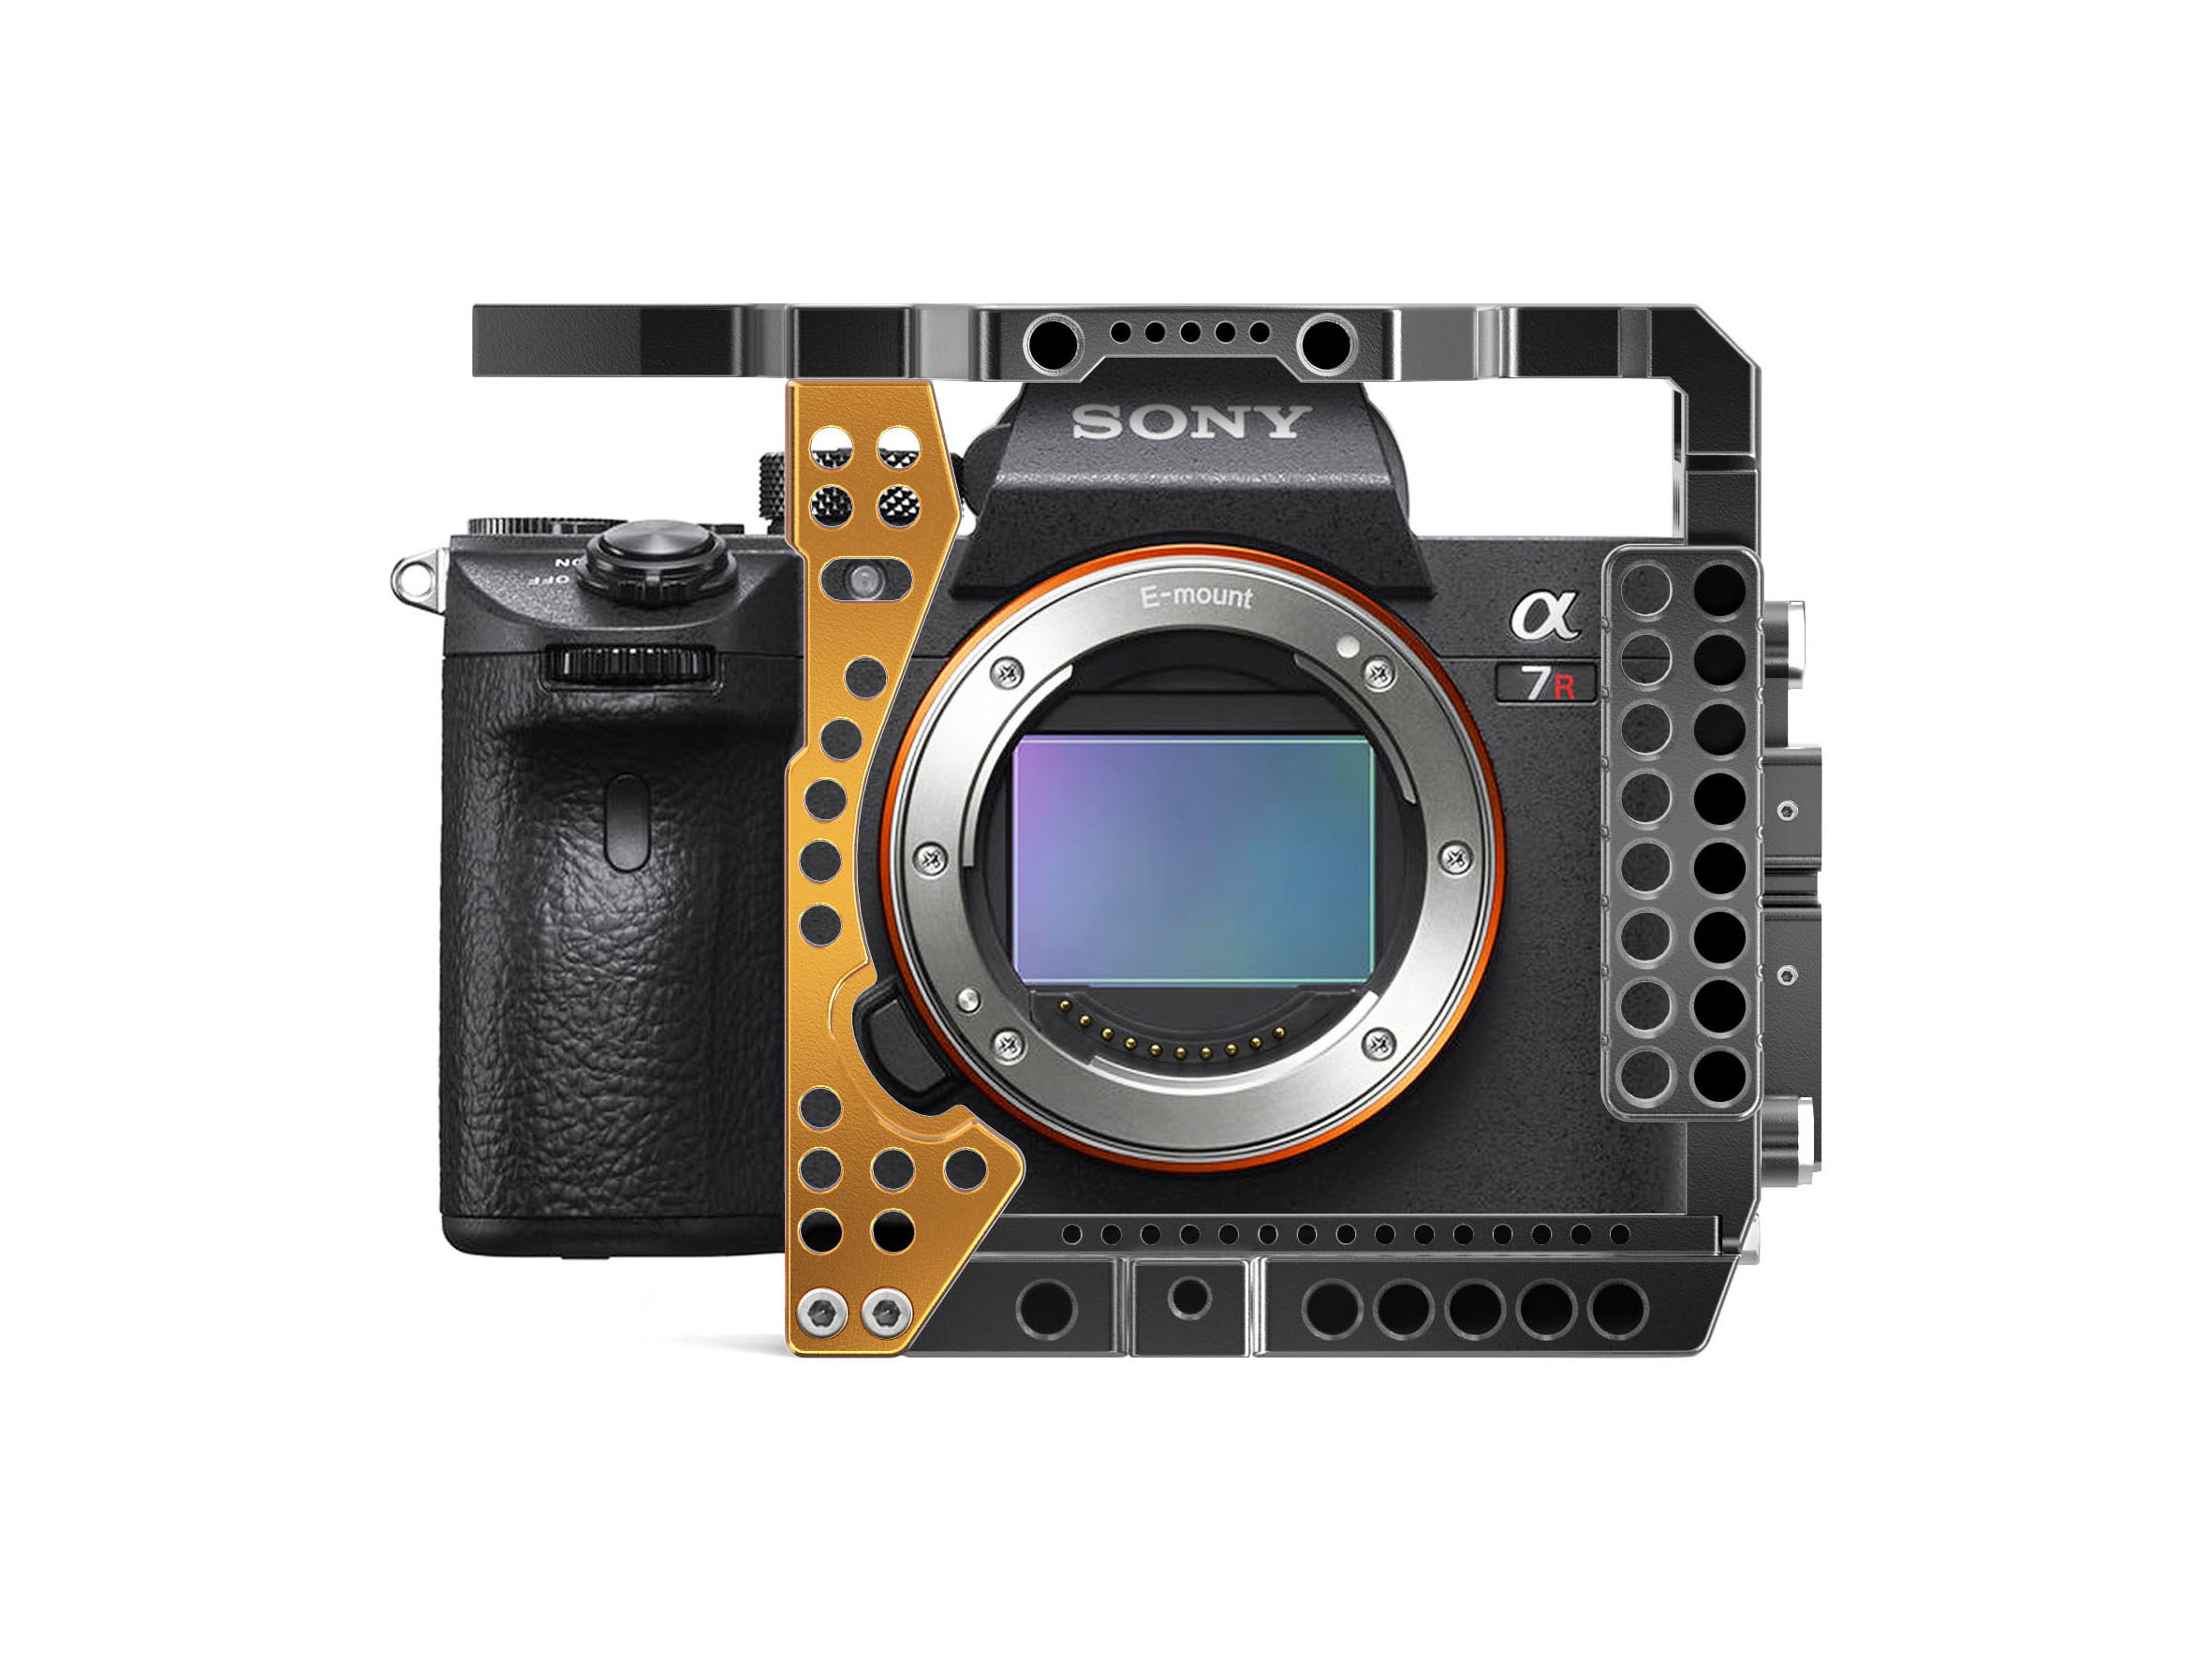 LockCircle Robot Skin for Sony a7 III, a7r III & a9: the